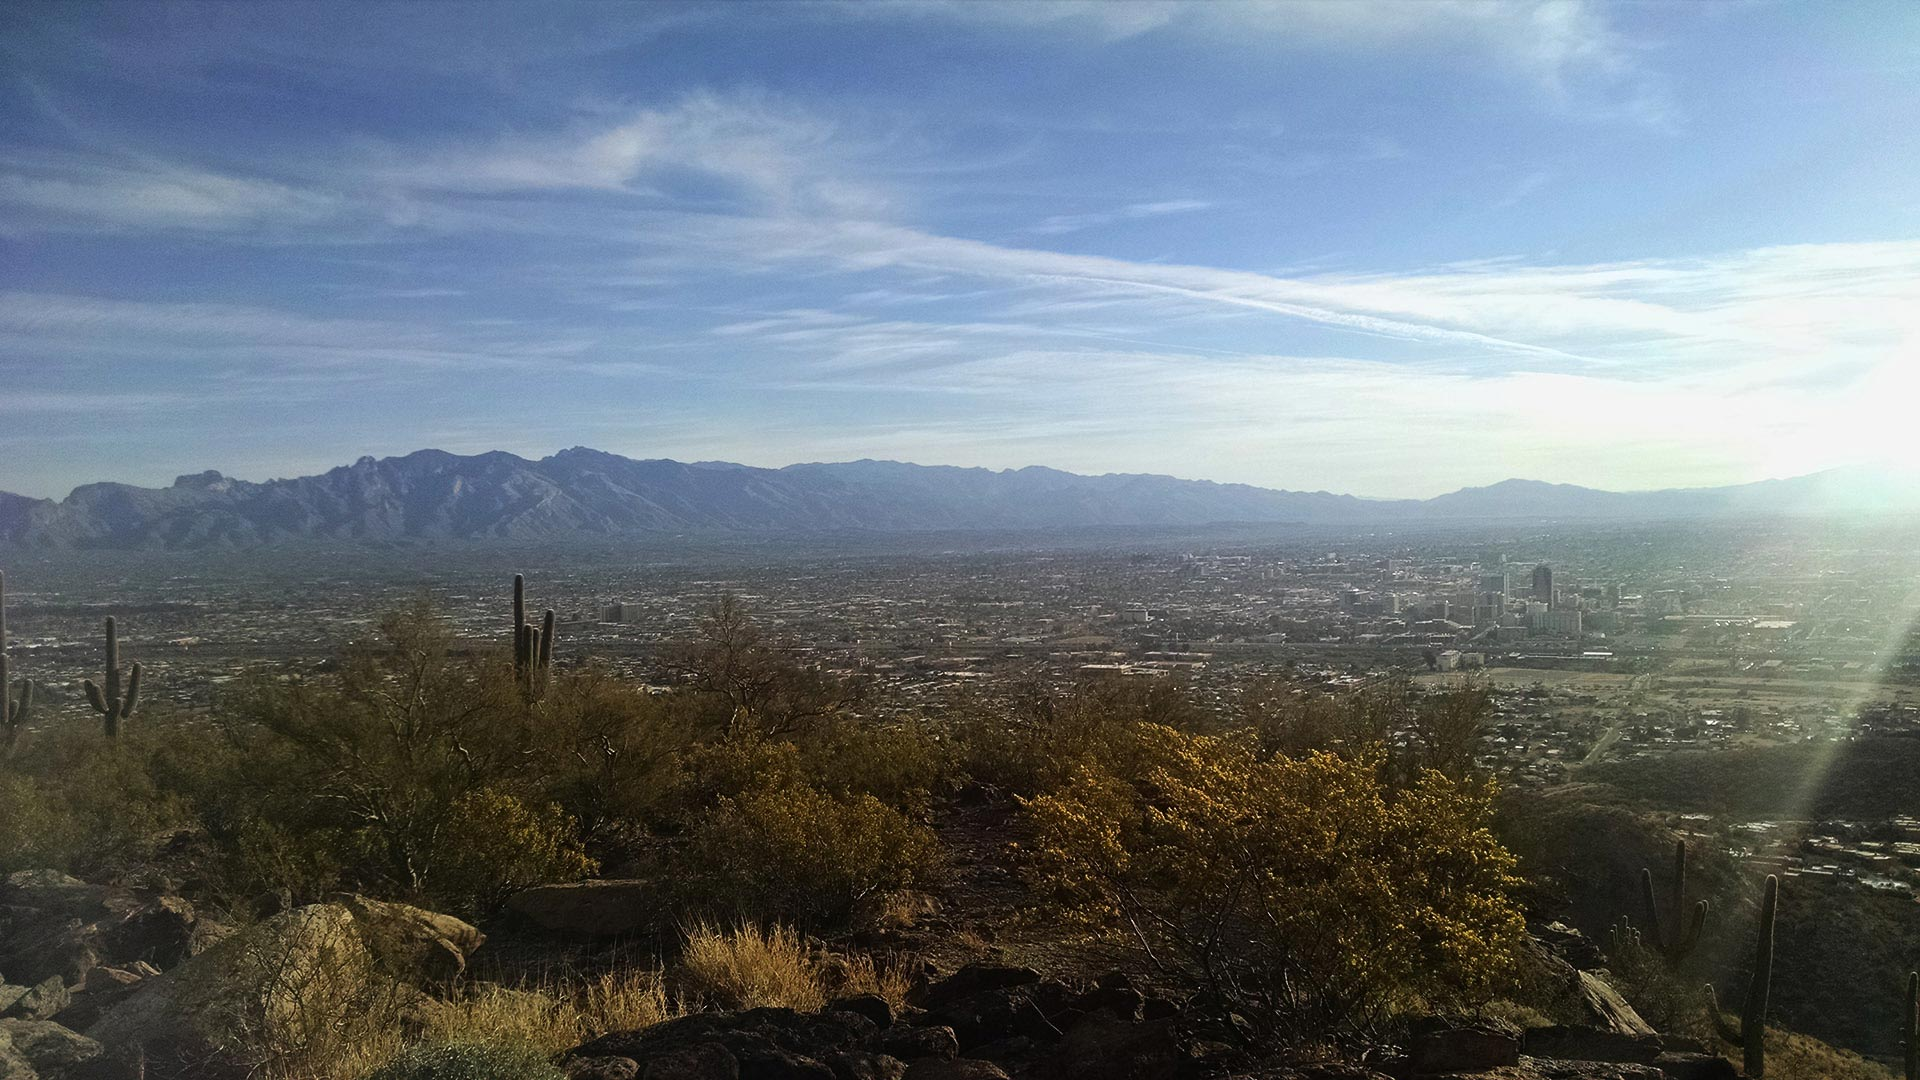 A view of Tucson from Tumamoc Hill.